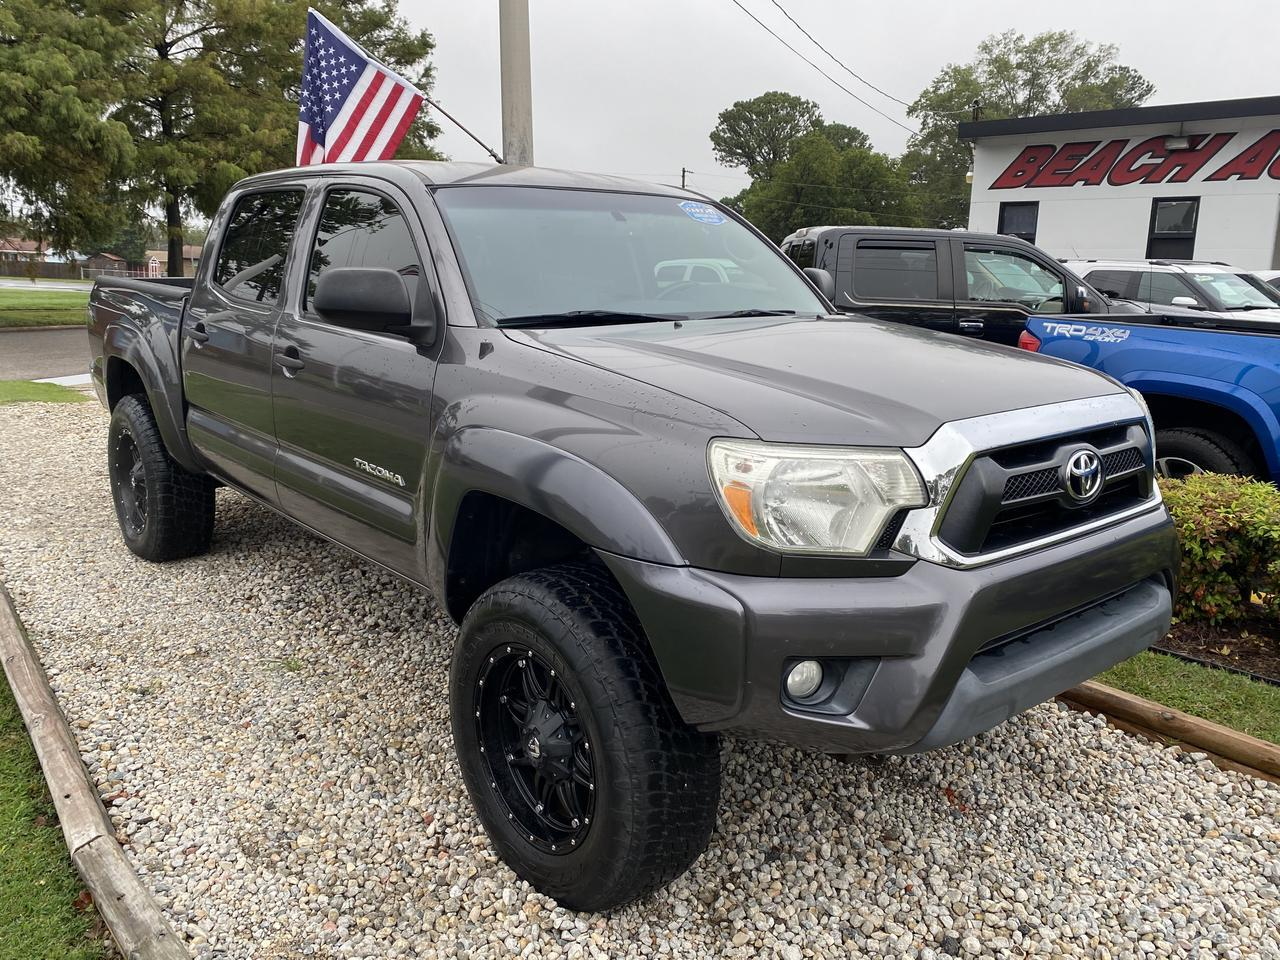 2013 TOYOTA TACOMA PRERUNNER DOUBLE CAB, WARRANTY, SR5 PKG, BACKUP CAM, BLUETOOTH, SIRIUS RADIO, AUX/USB PORT, CLEAN! Norfolk VA